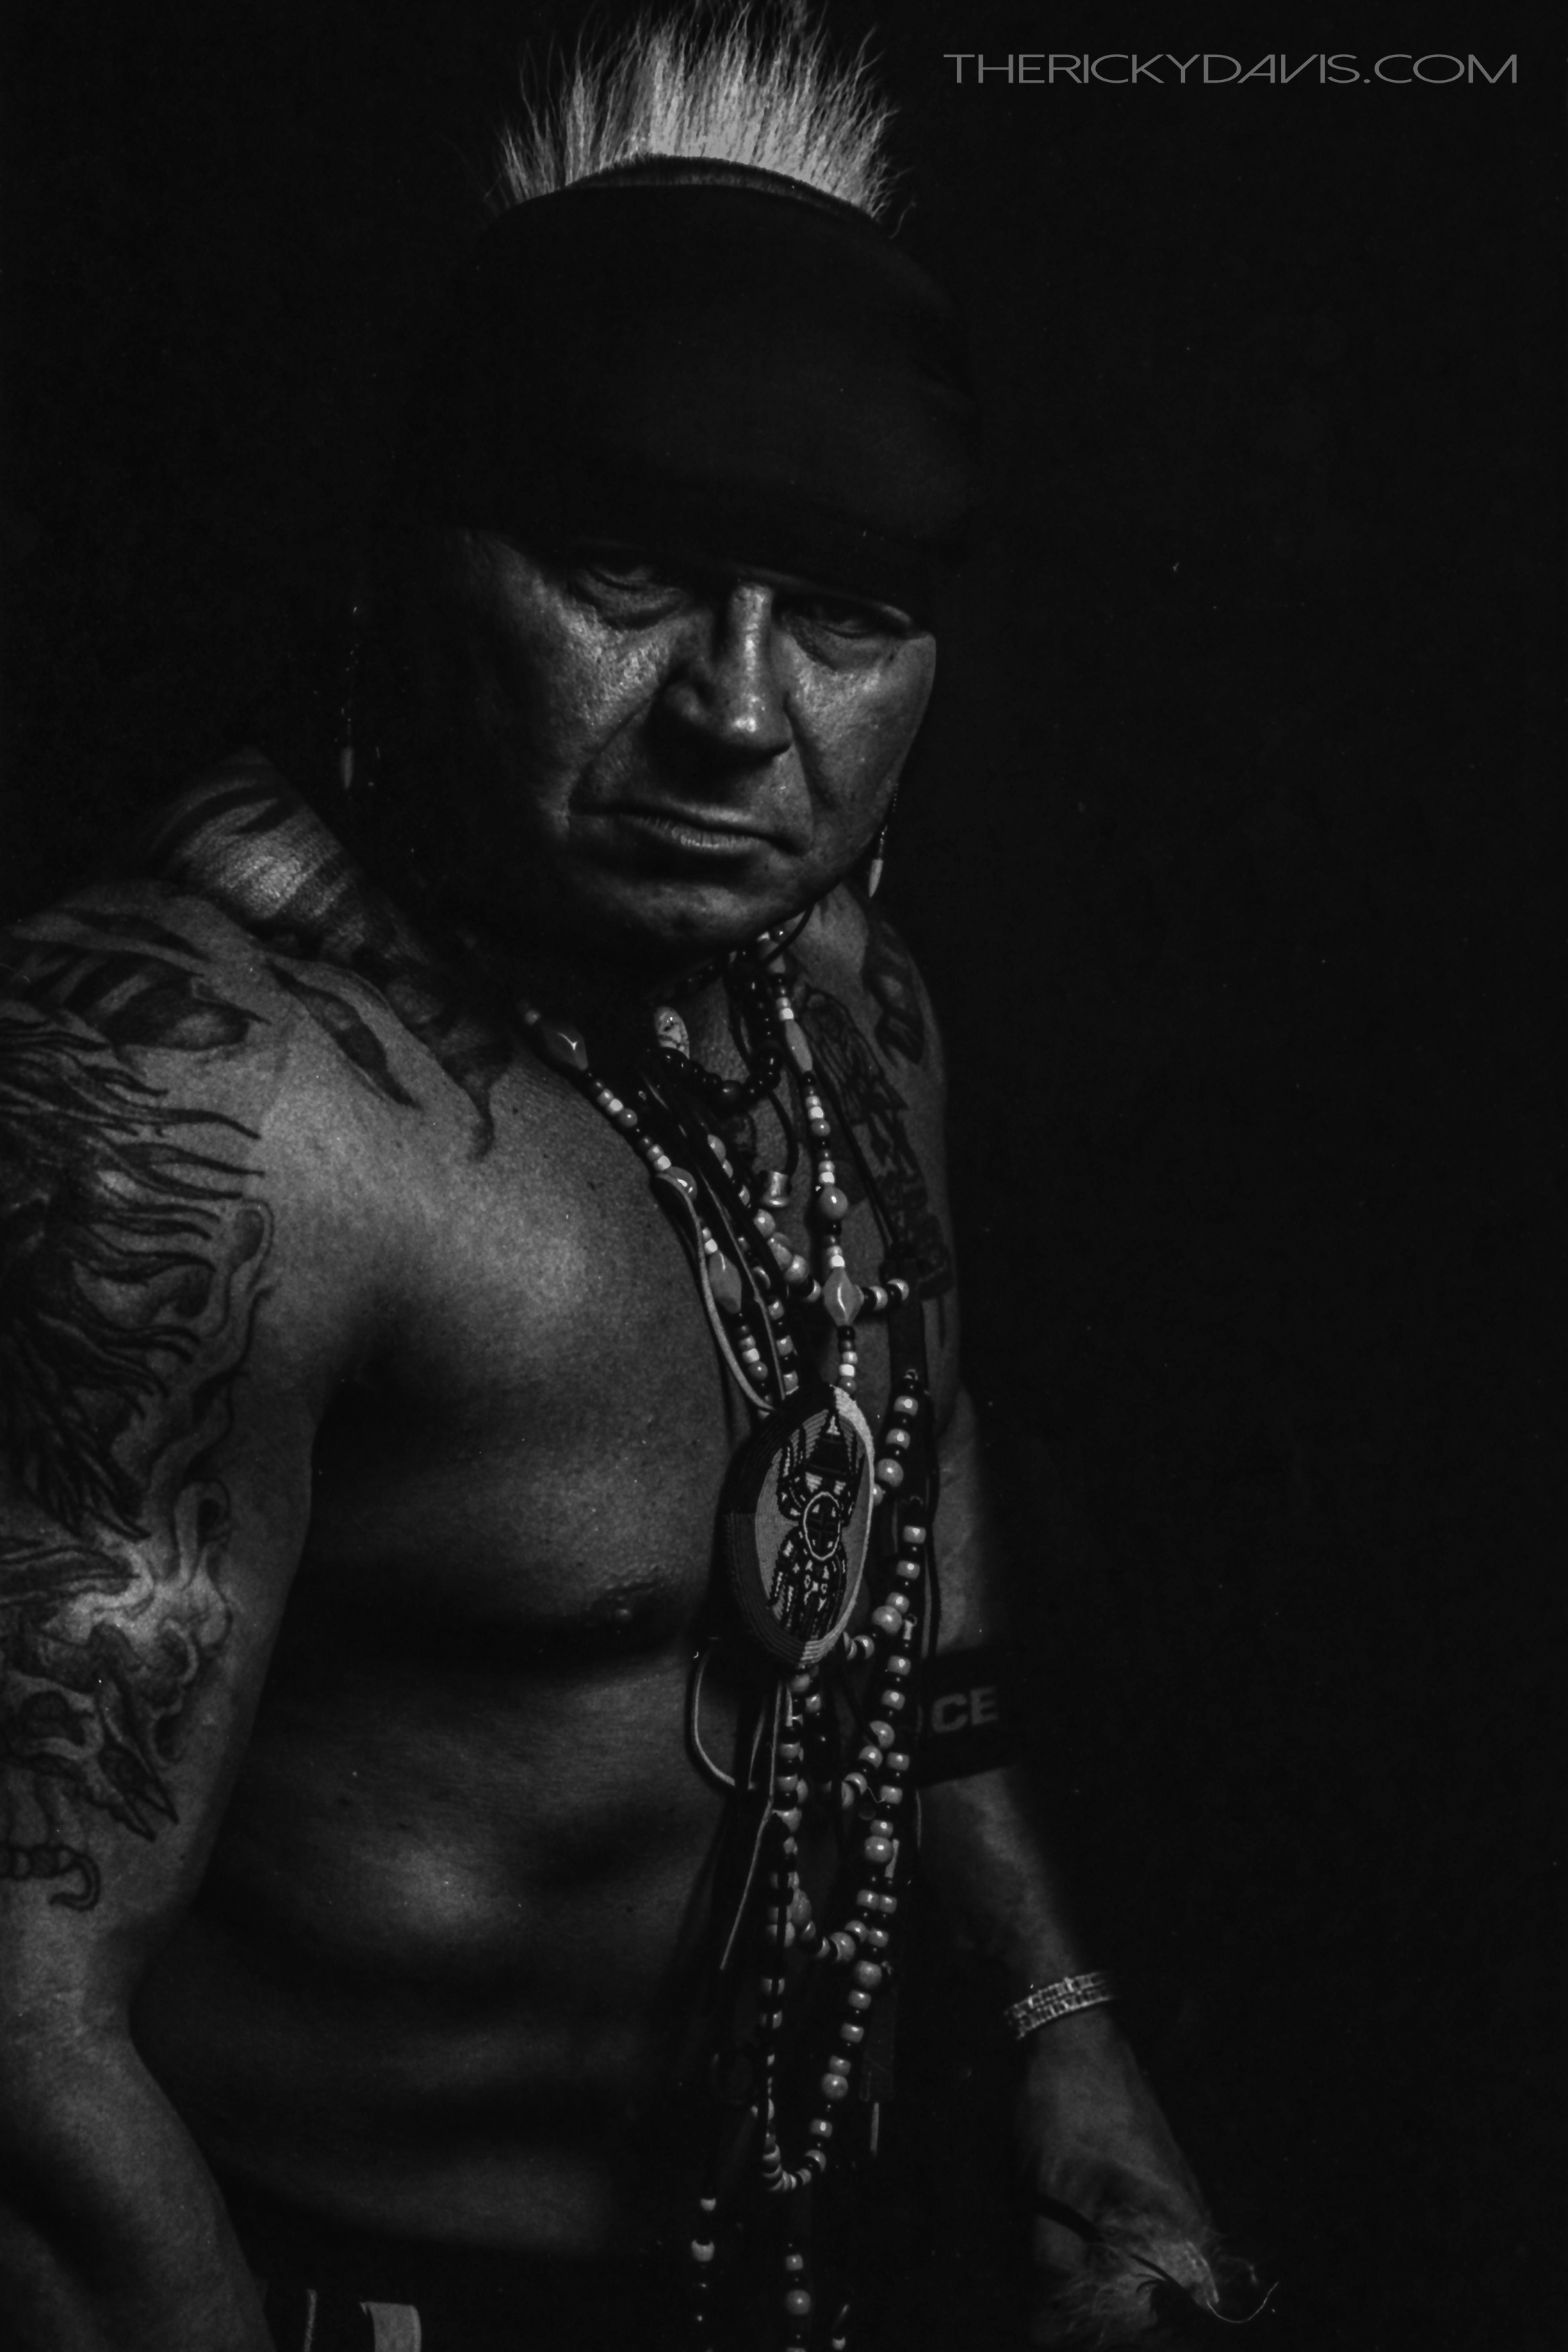 Native American Portraits - The Series - Wes Collins - Photographer - Ricky Davis